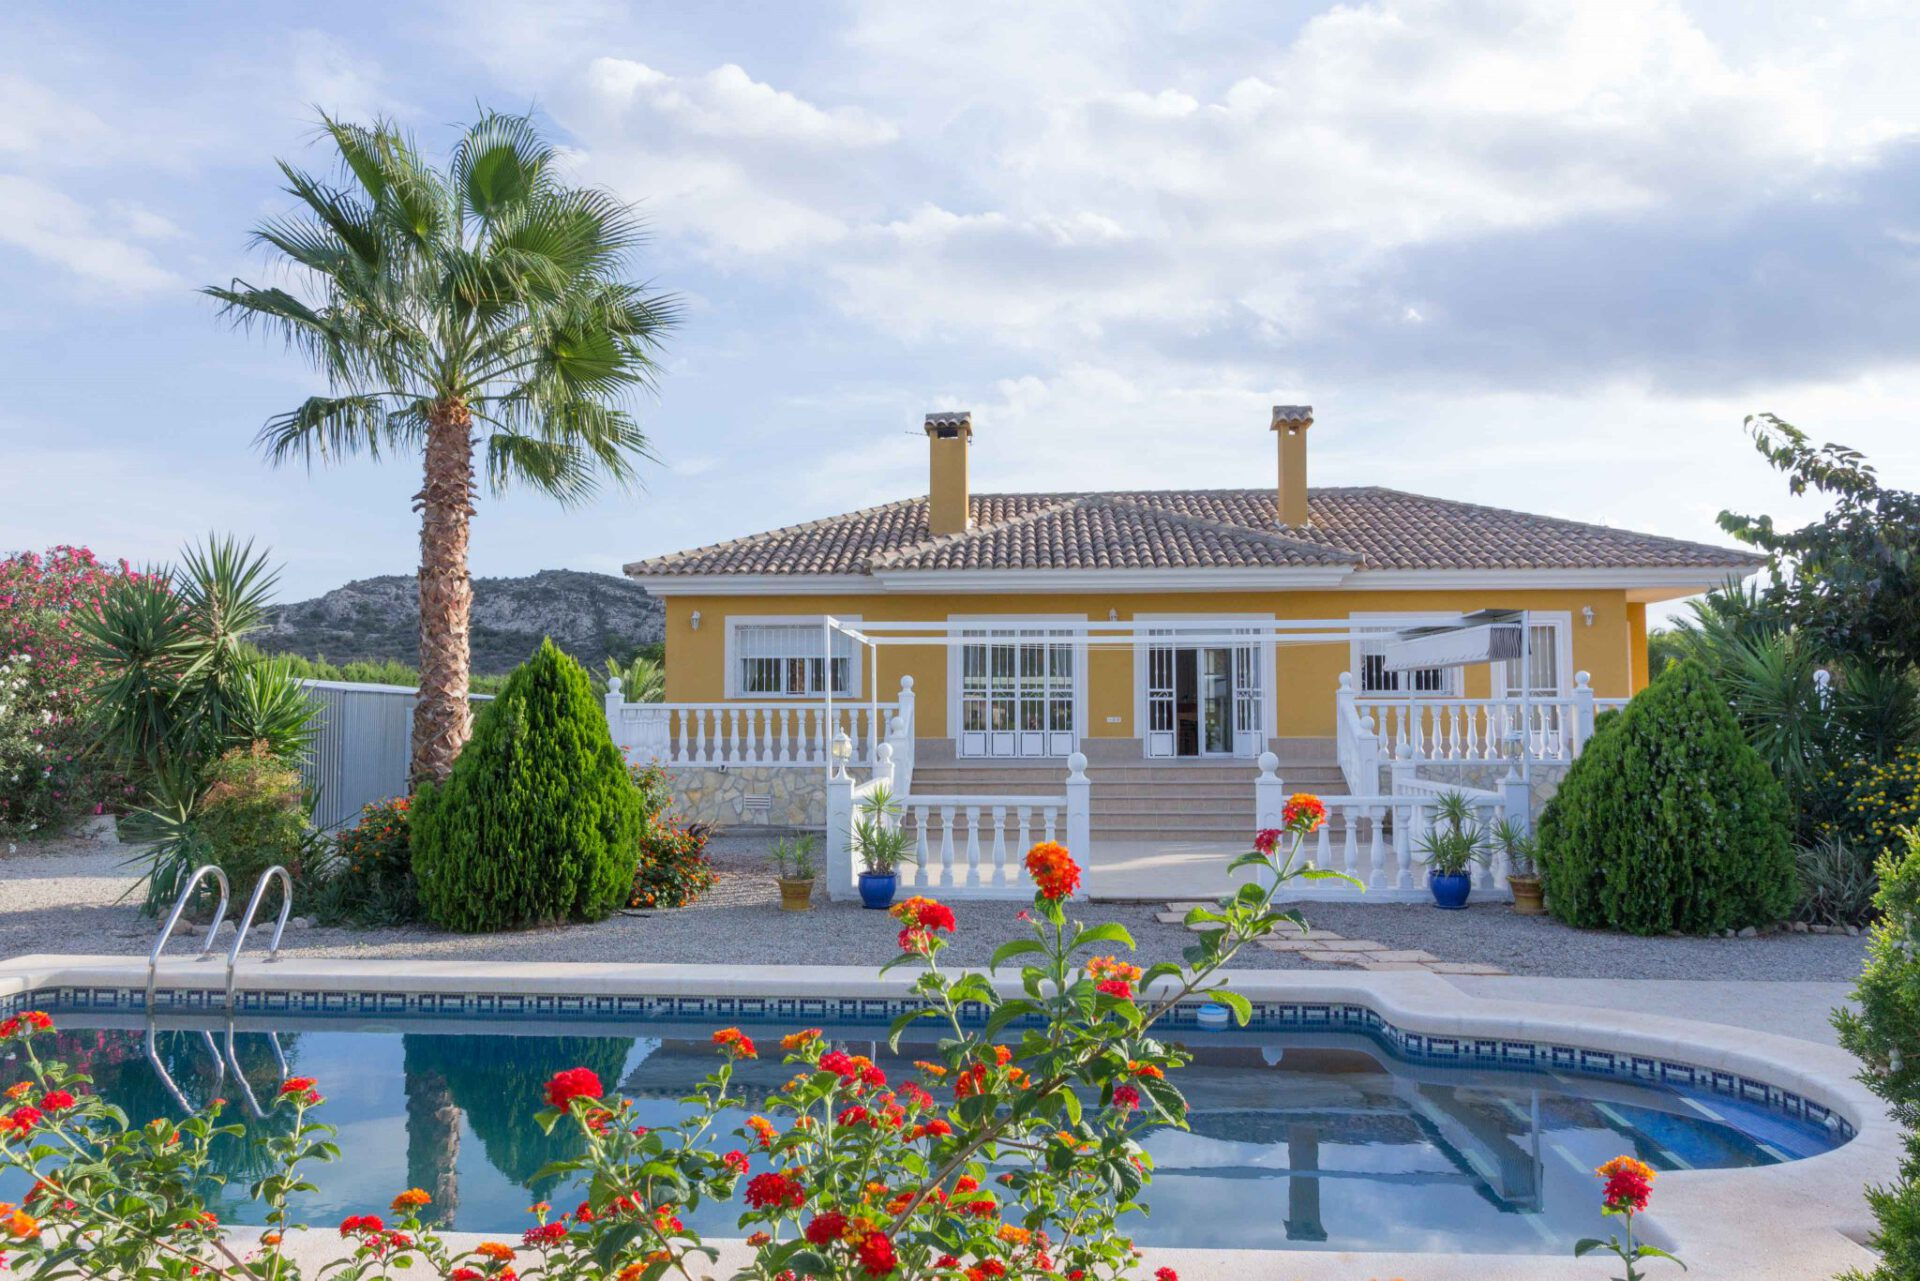 Ongekend Villa 3 bedrooms with a private pool in Totana - Casana RY-98